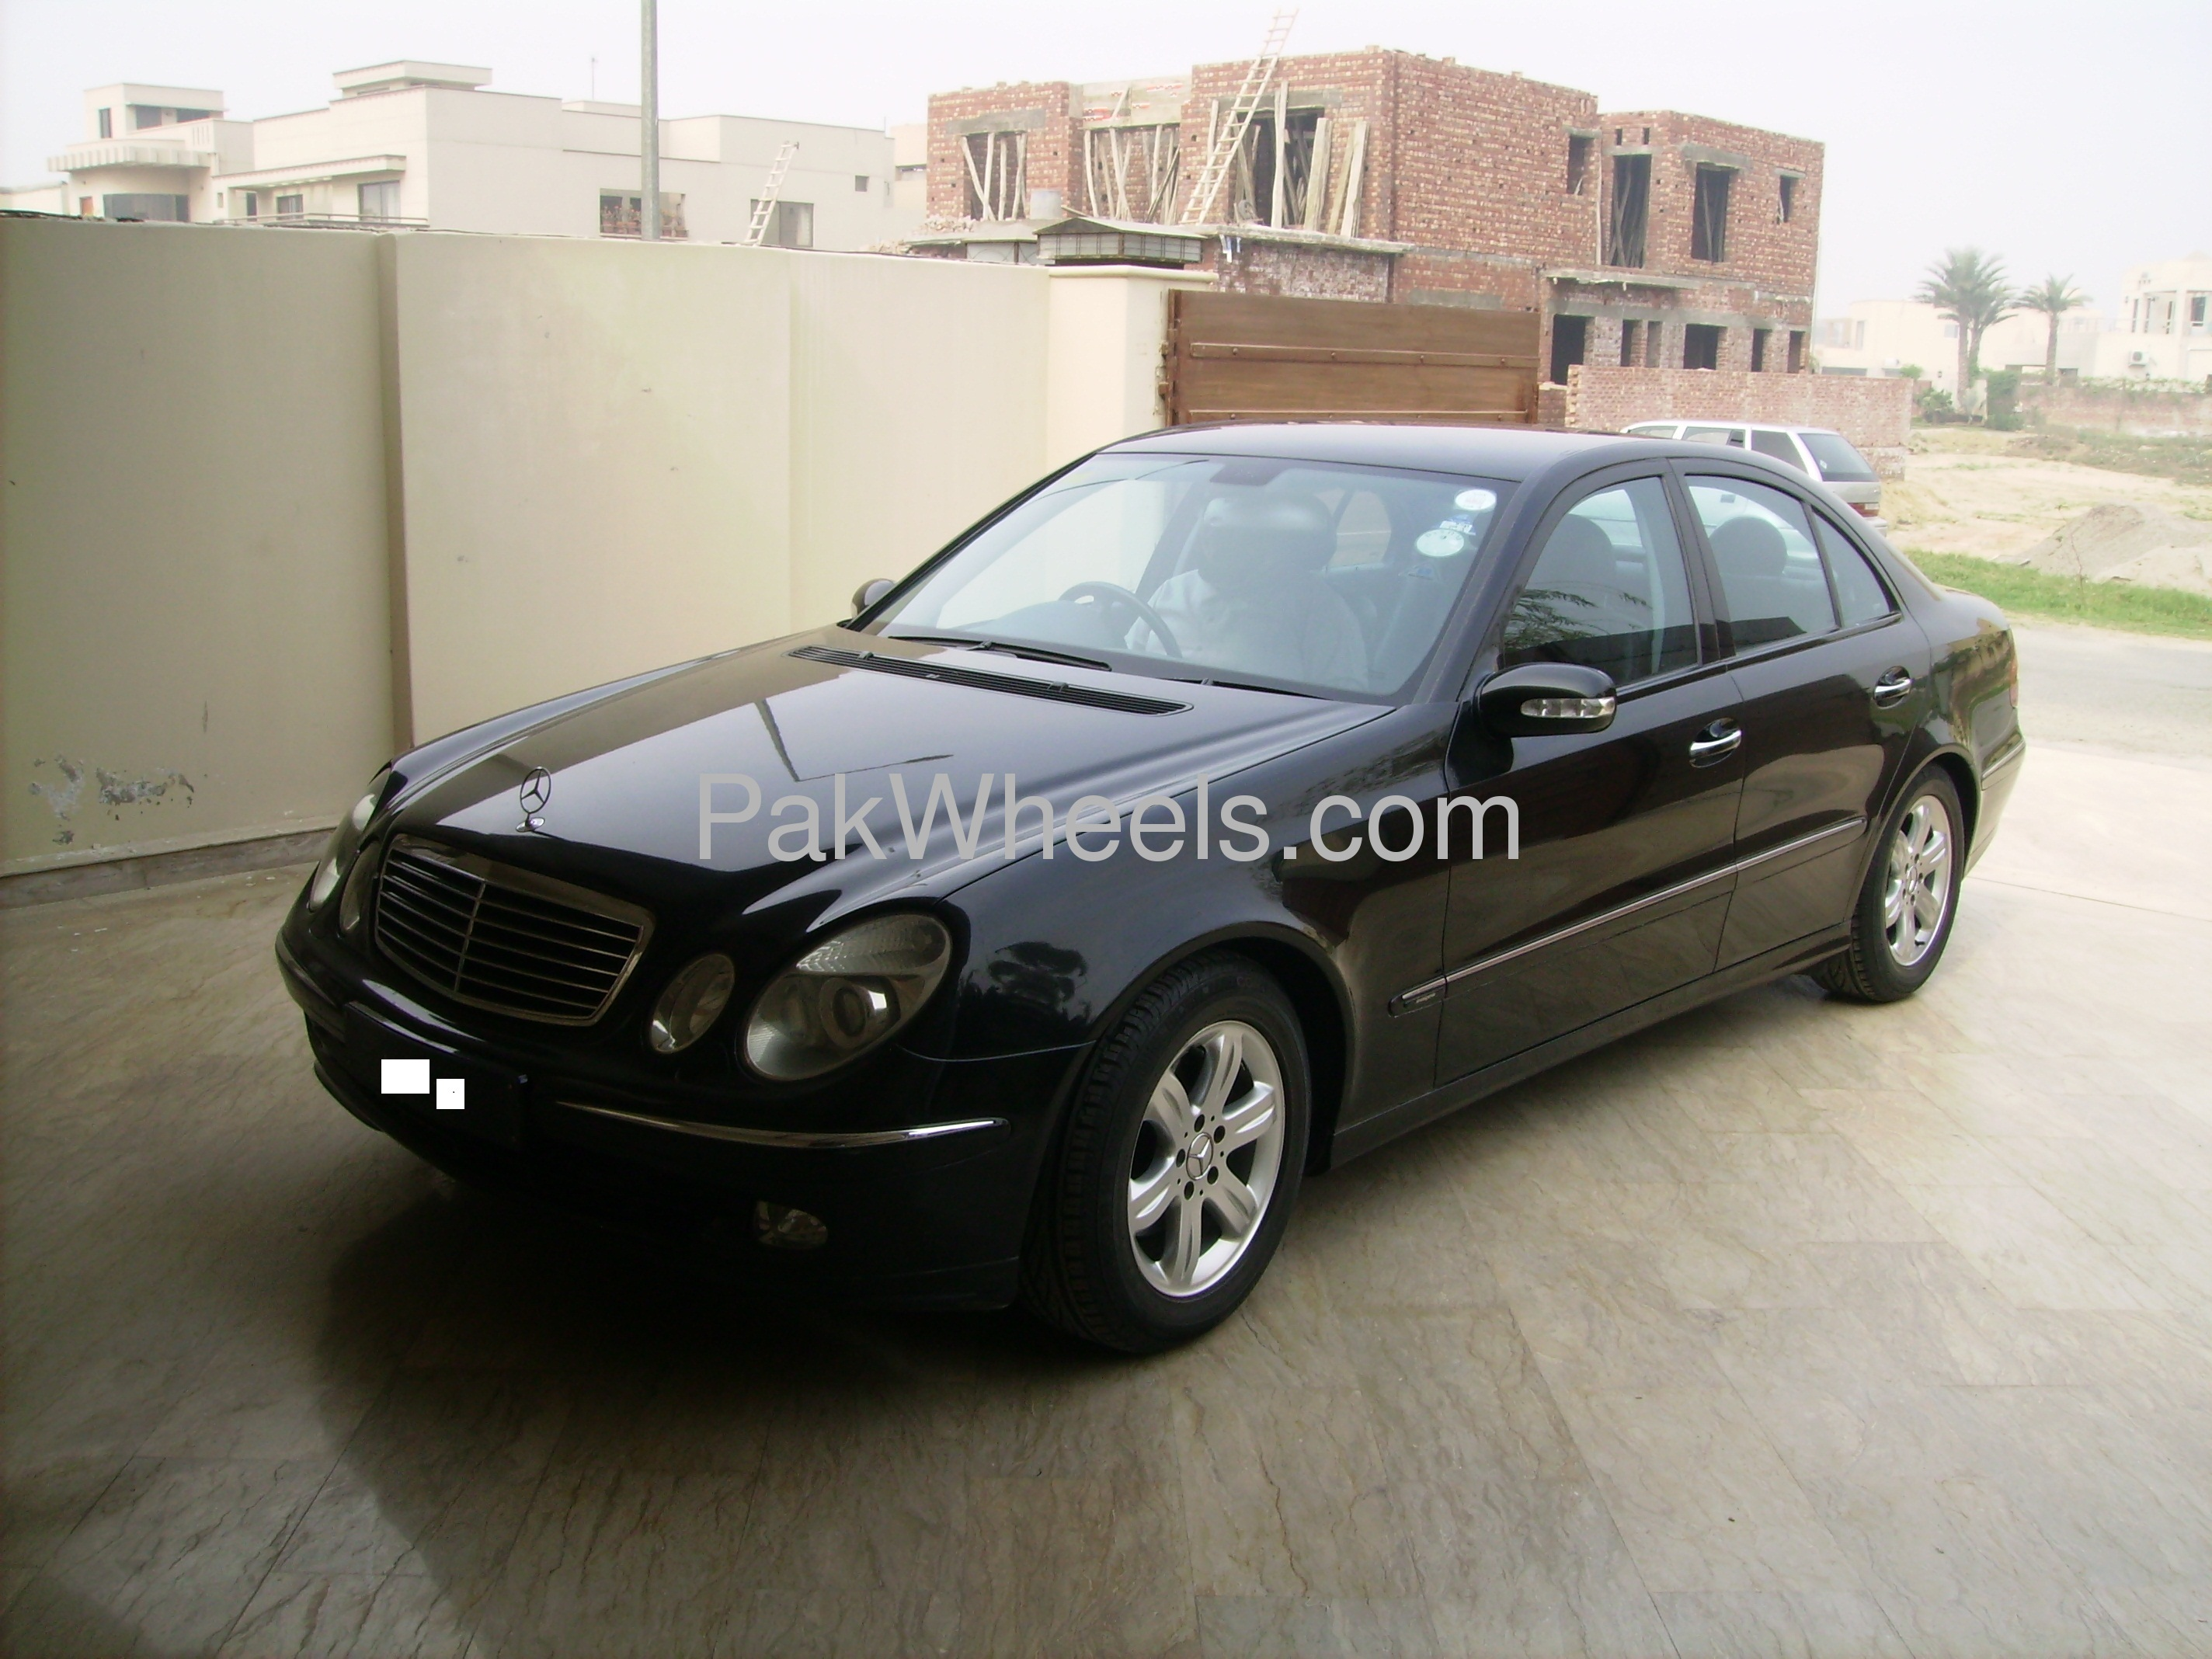 Used mercedes benz e class e200 2002 car for sale in for Mercedes benz 2002 e class